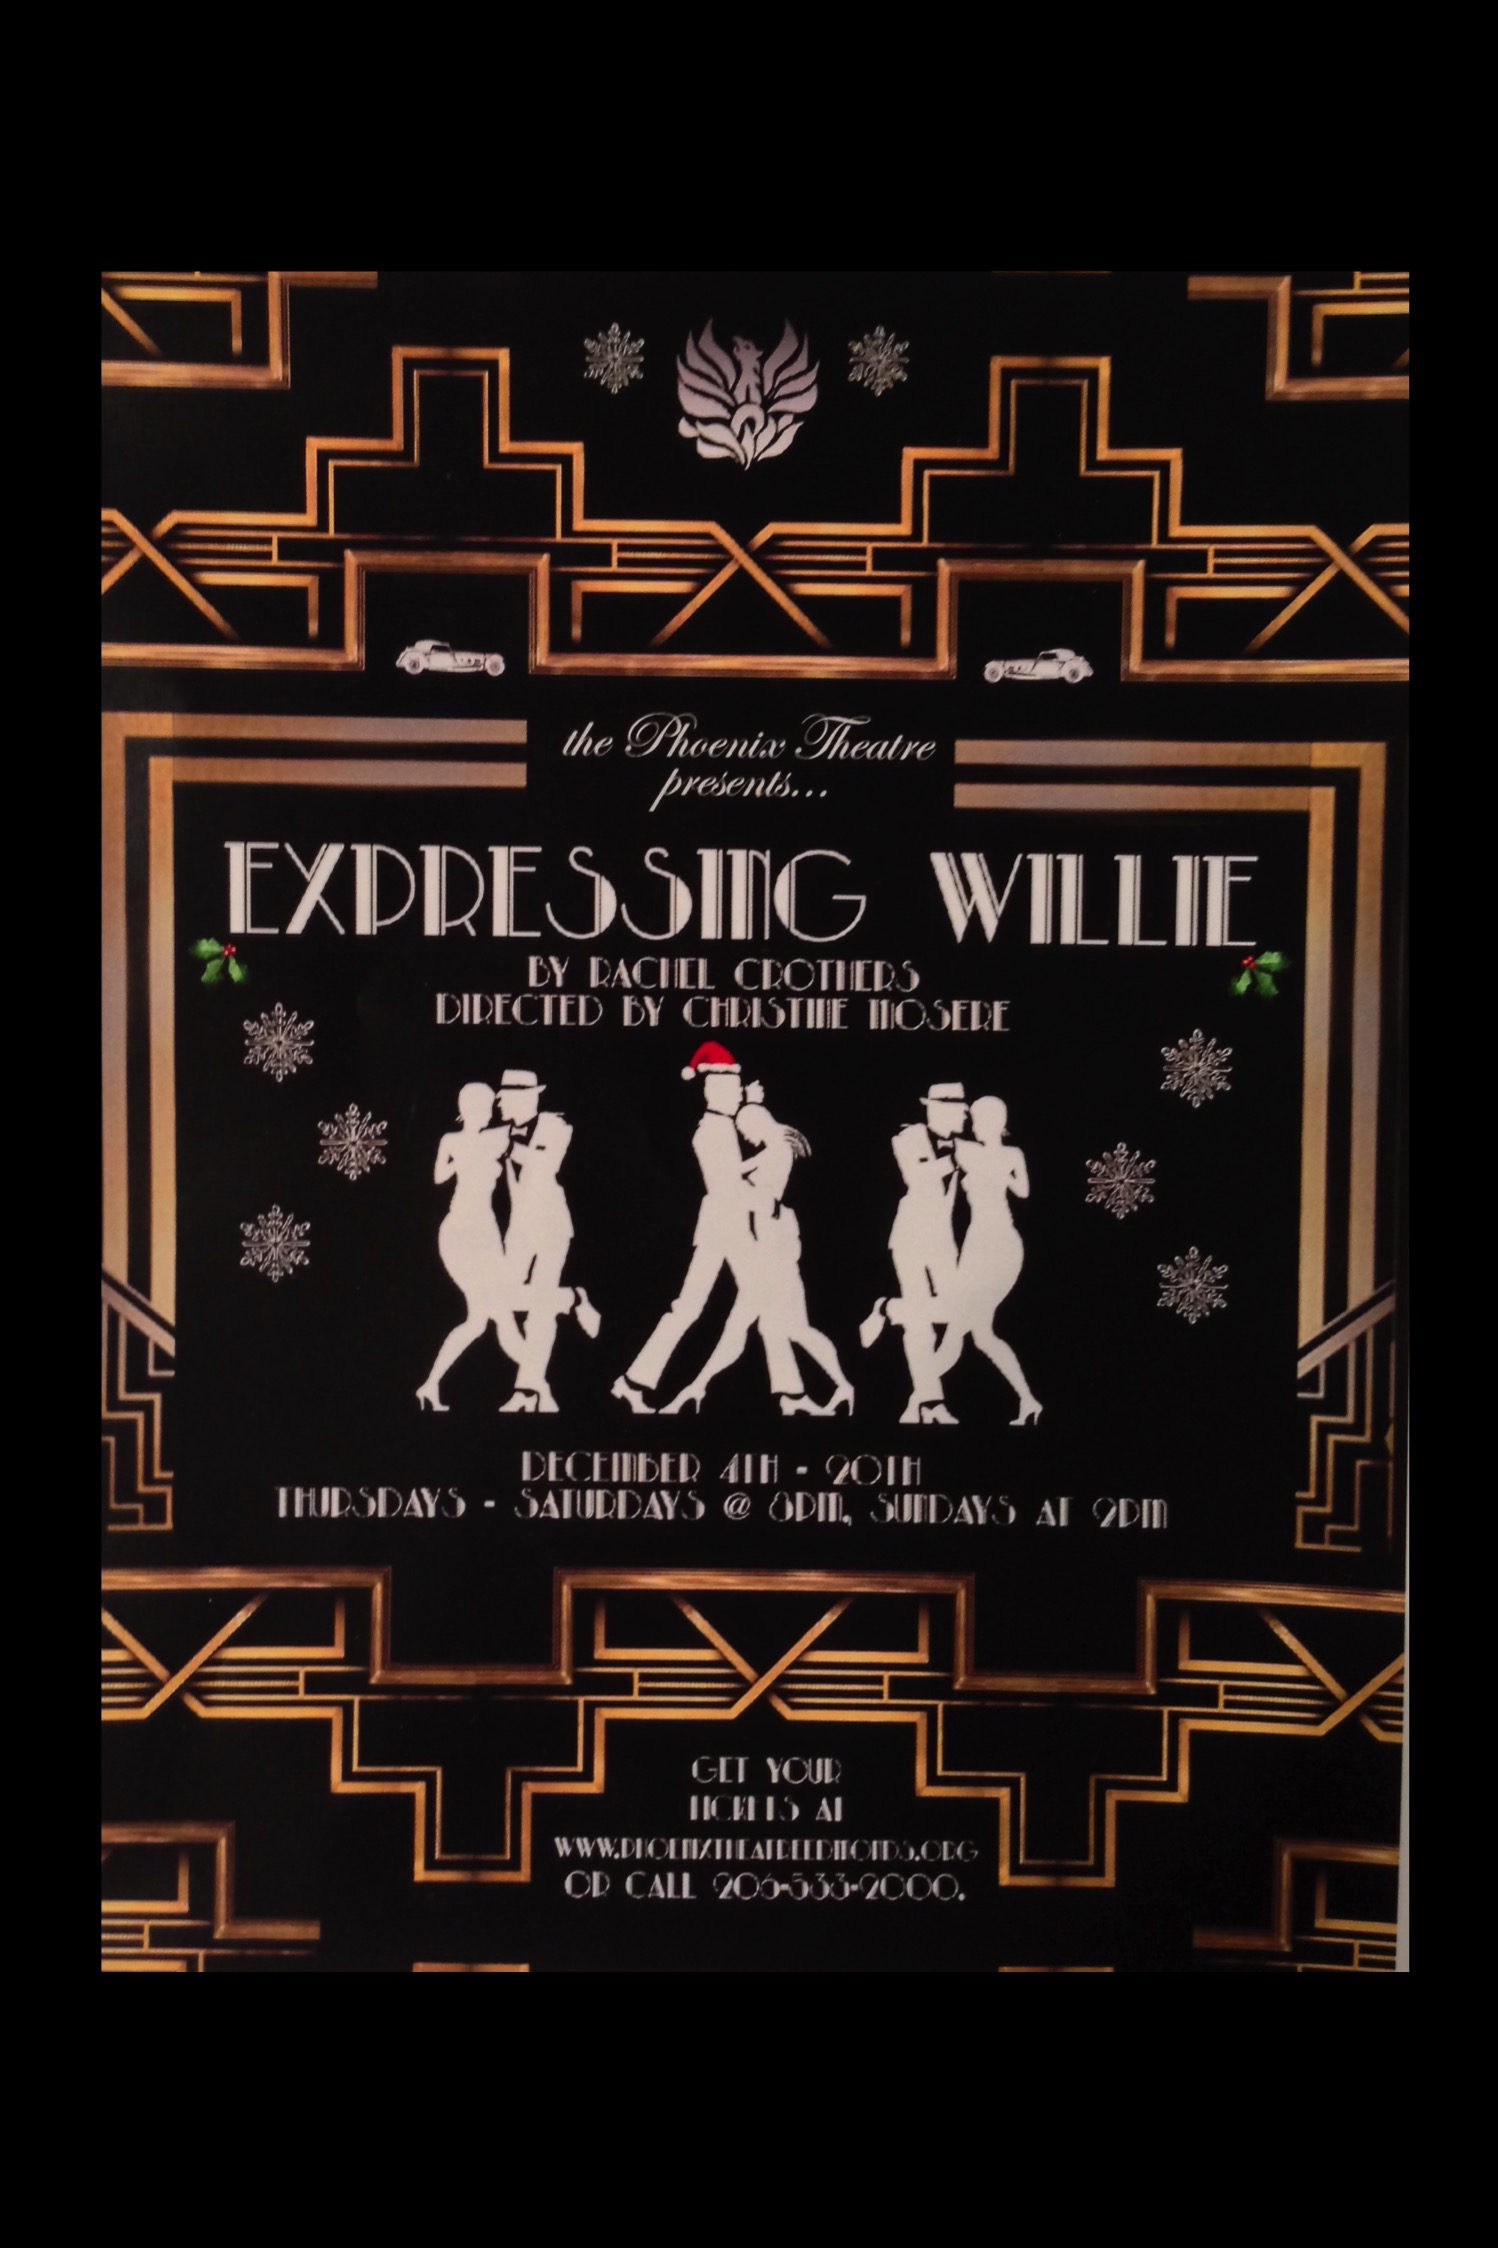 Expressing Willie Program Cover